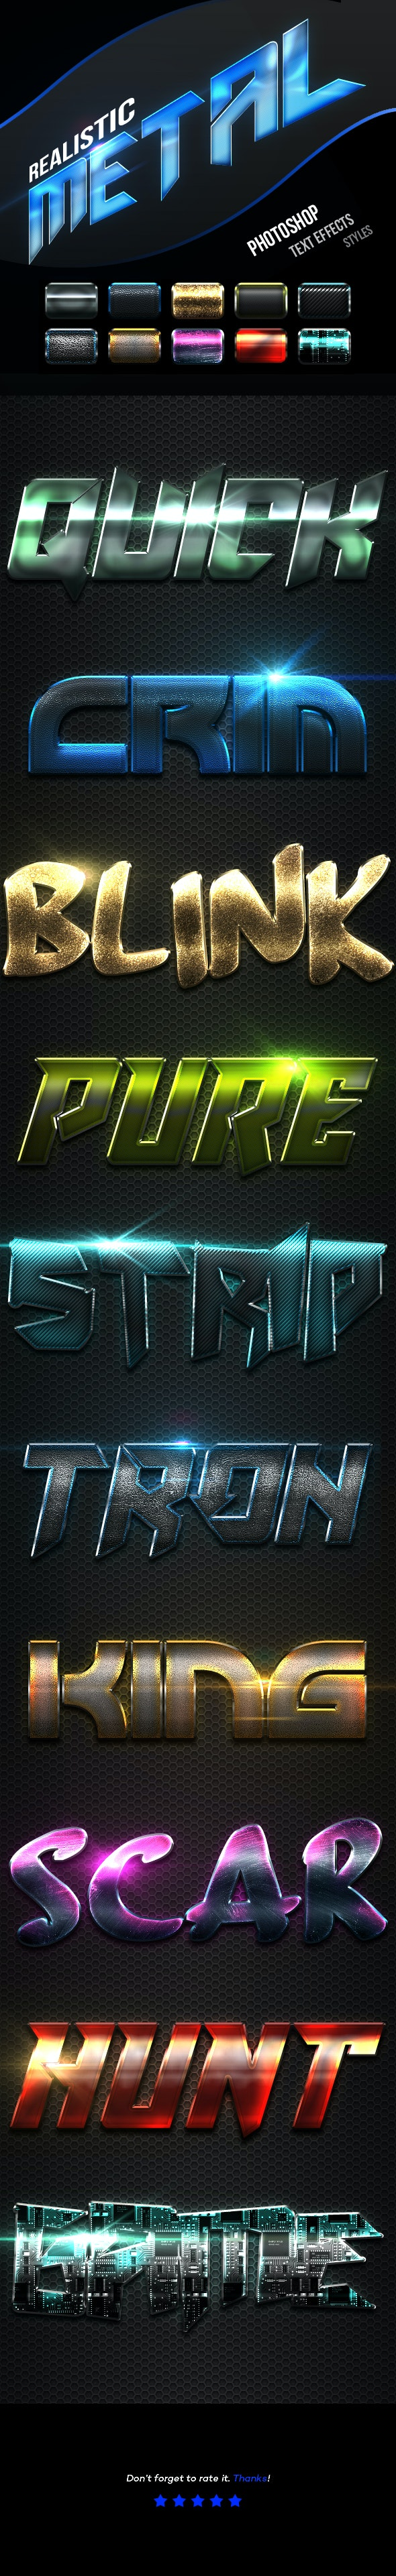 Realistic Metal Text Effects Vol.4 - Text Effects Actions